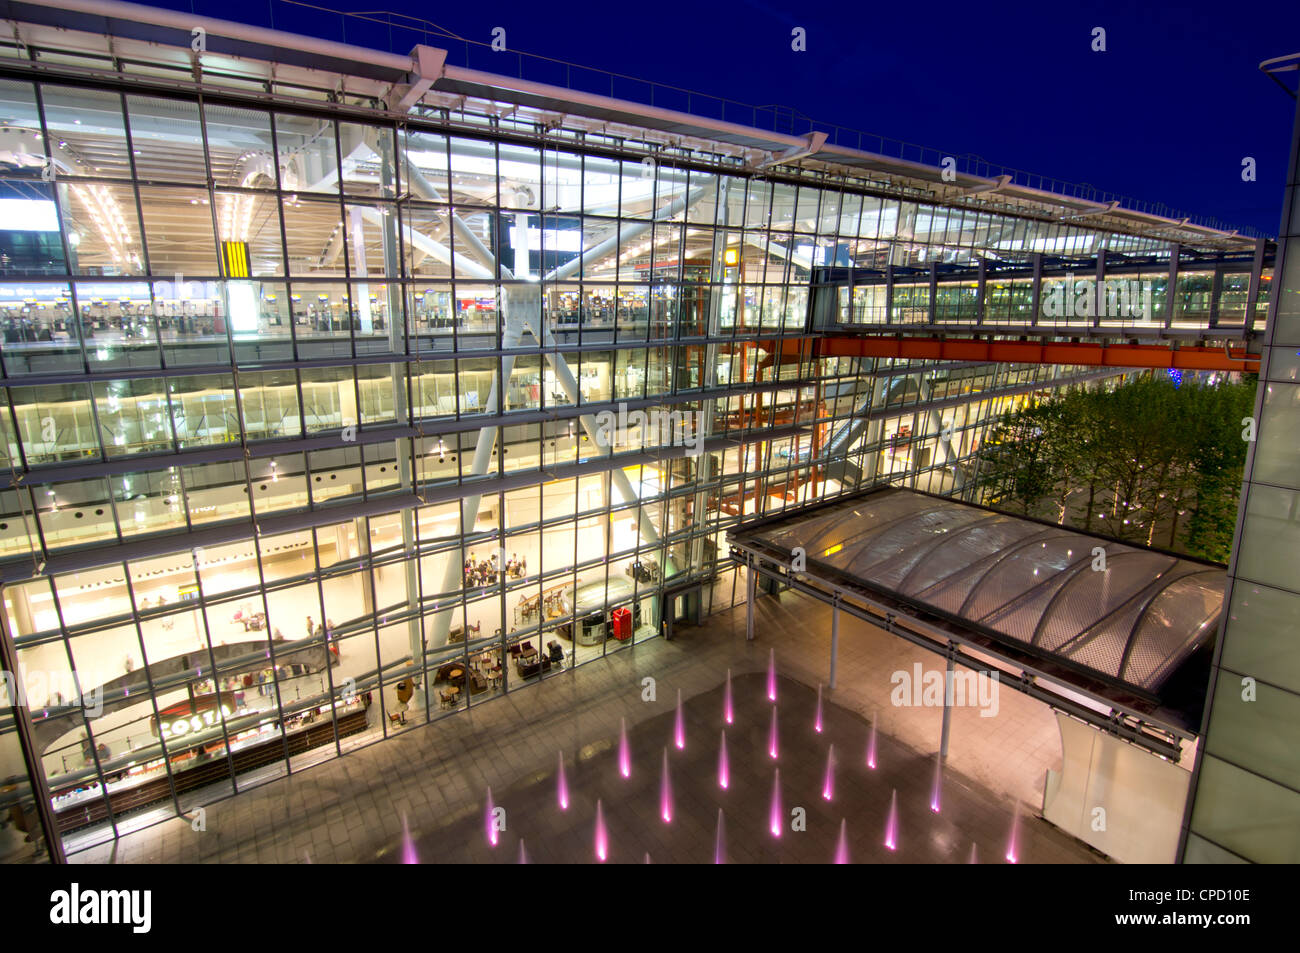 Heathrow Airport Terminal 5 building at dusk, London, England, United Kingdom, Europe - Stock Image